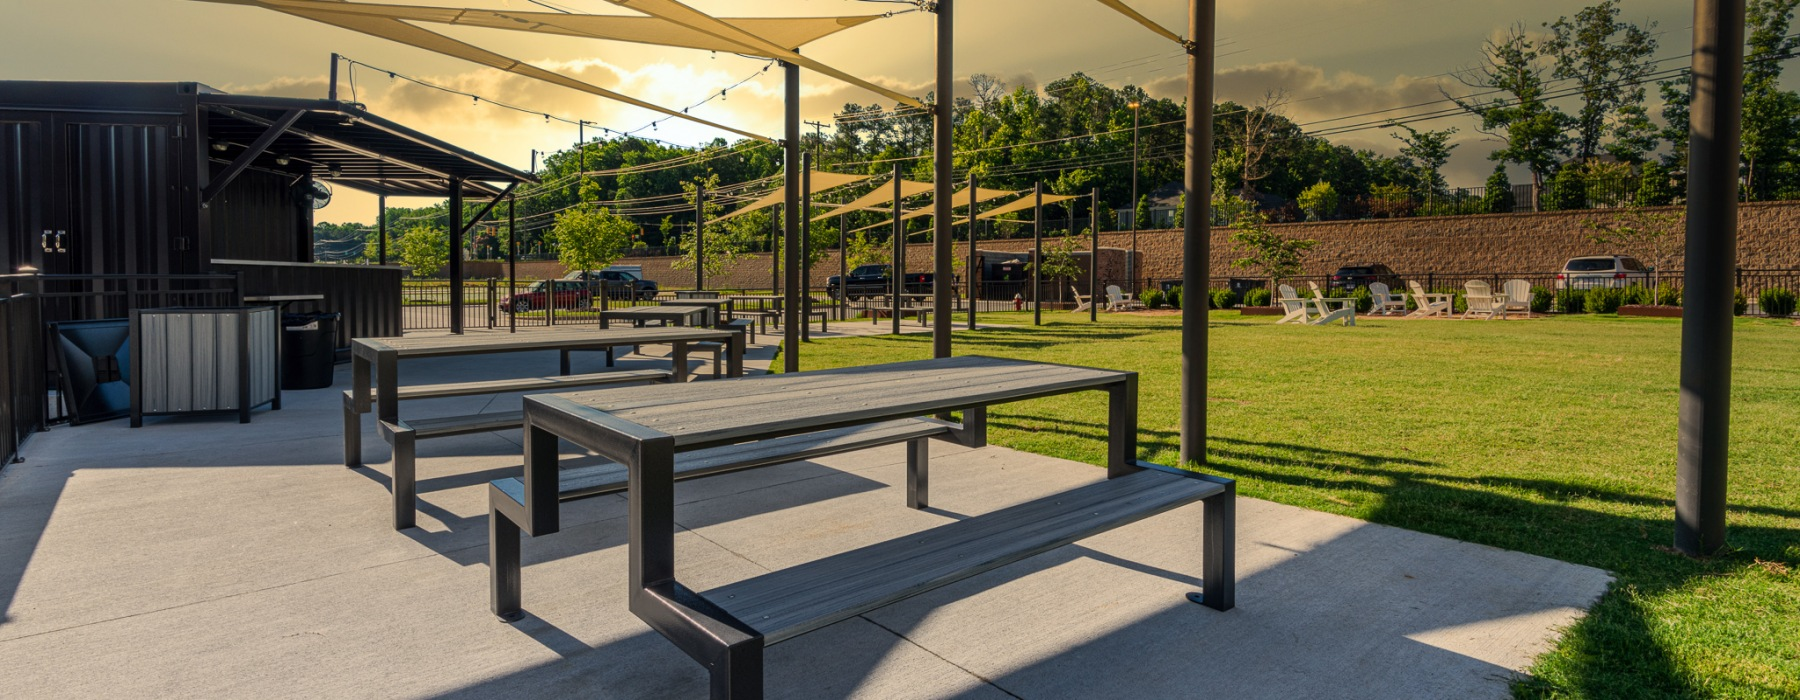 Carraway Village Apartments has an onsite beer garden for residents!